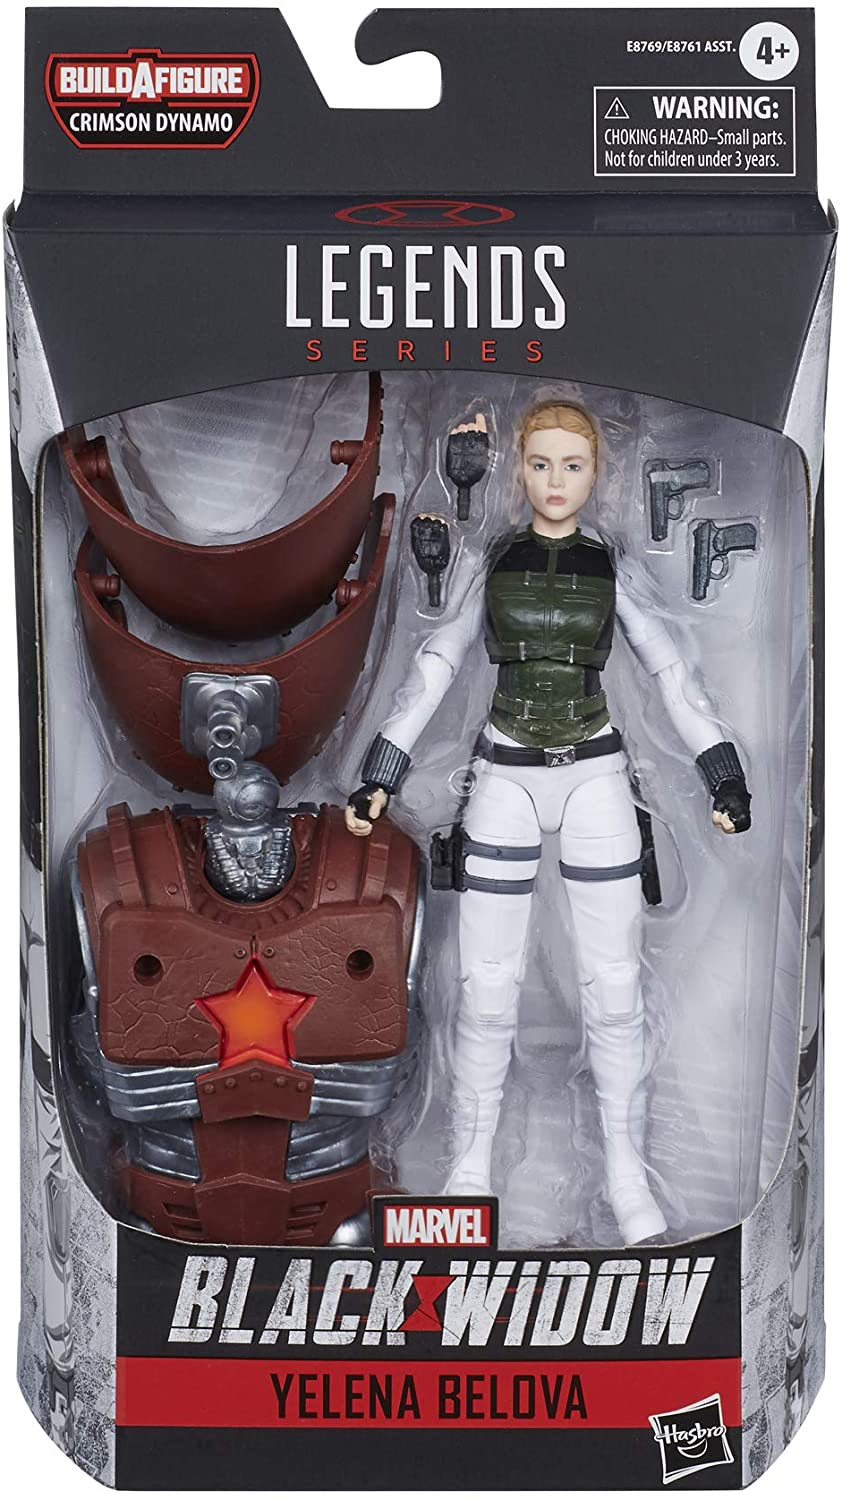 Marvel Hasbro Black Widow Legends Series 6-inch Collectible Yelena Belova Action Figure Toy, Premium Design,